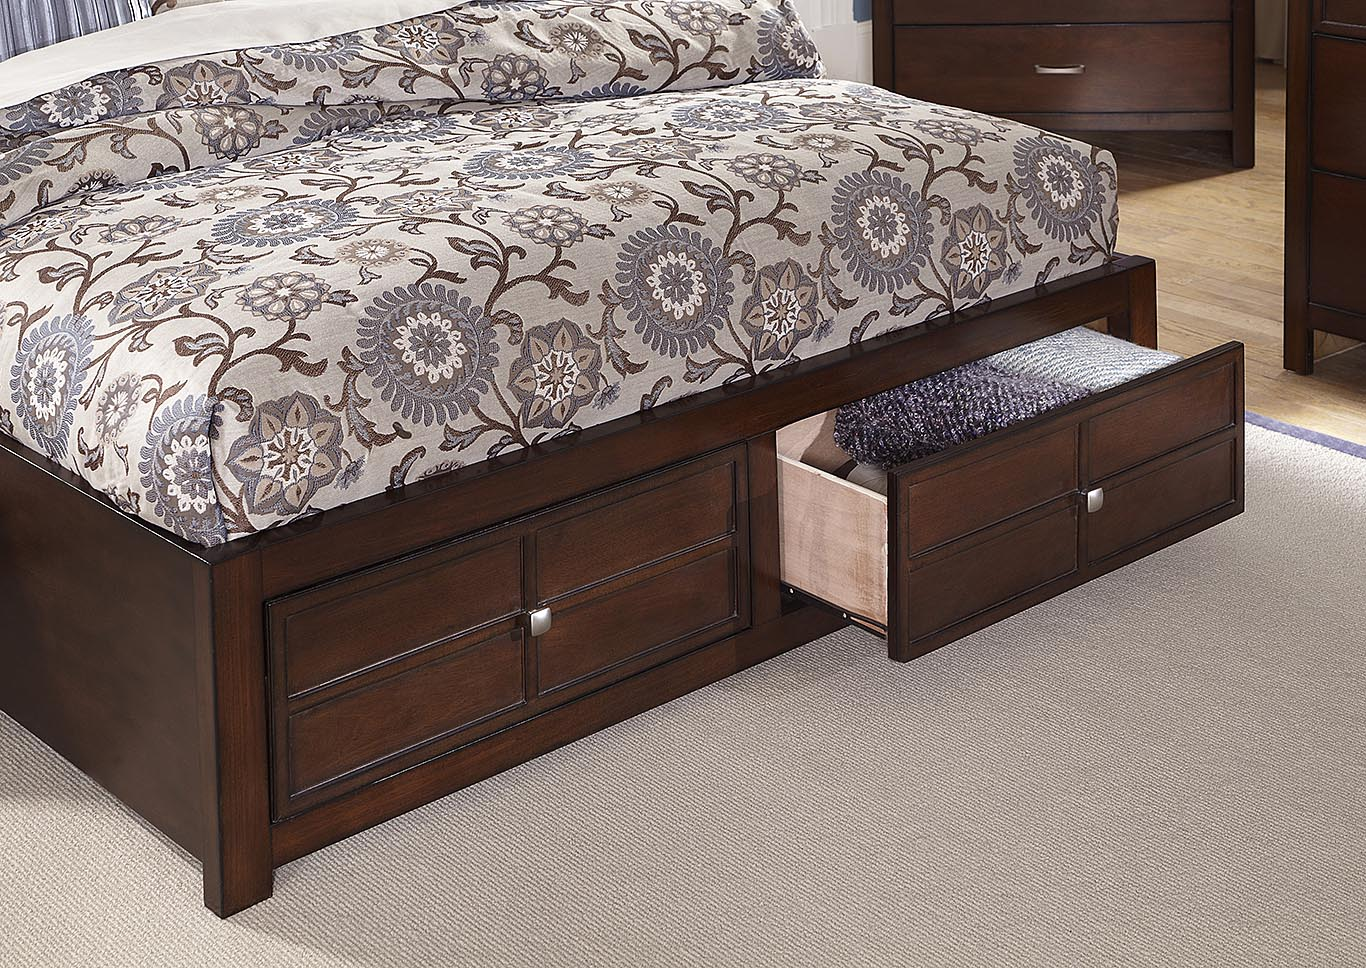 Kensington Cherry California King Bed,New Classic